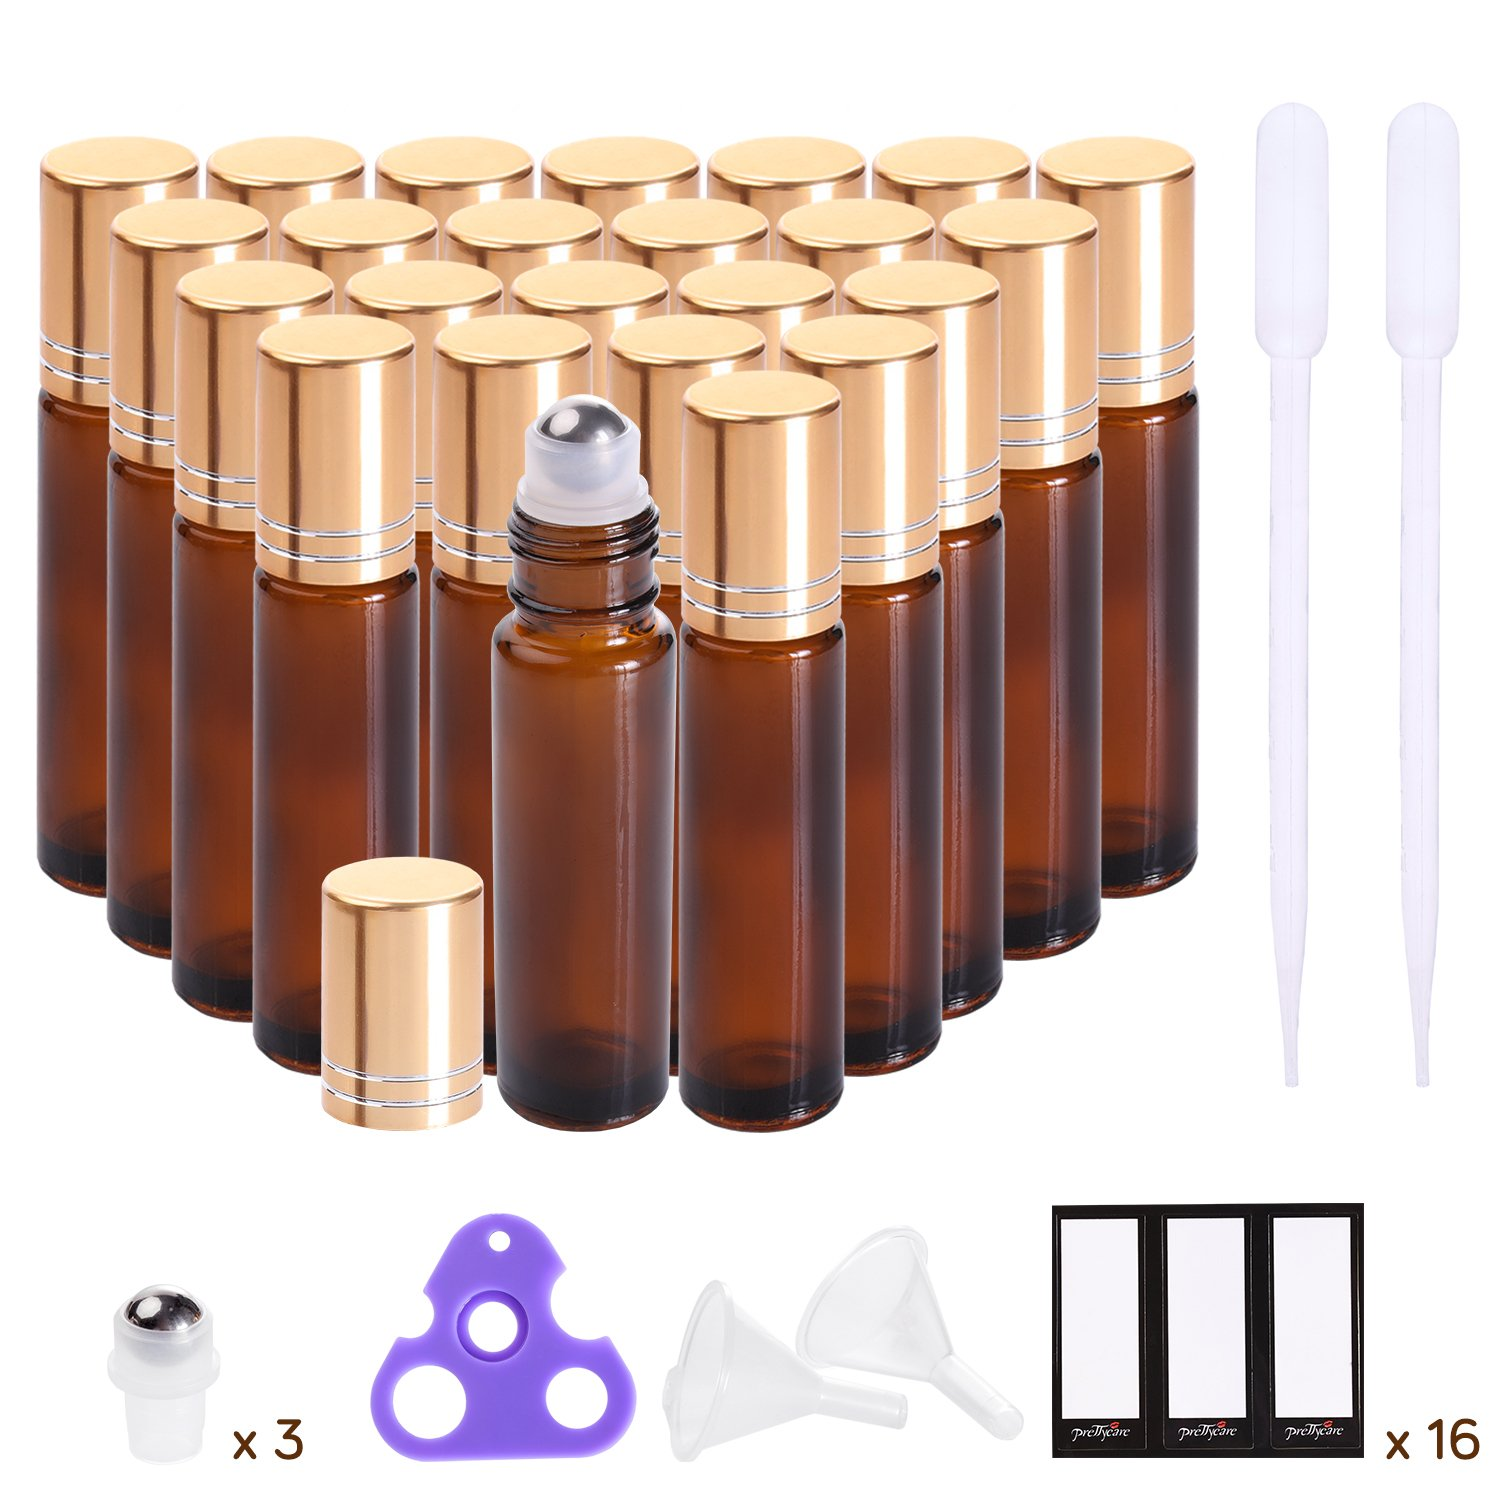 Essential Oil Roller Bottles 10ml (Amber Glass Bottle, 24 pack, 6 Extra Roller Balls,48 Labels, 2 Openers, 2 Funnels by PrettyCare) Roller Balls For Essential Oils, Roll on Bottles